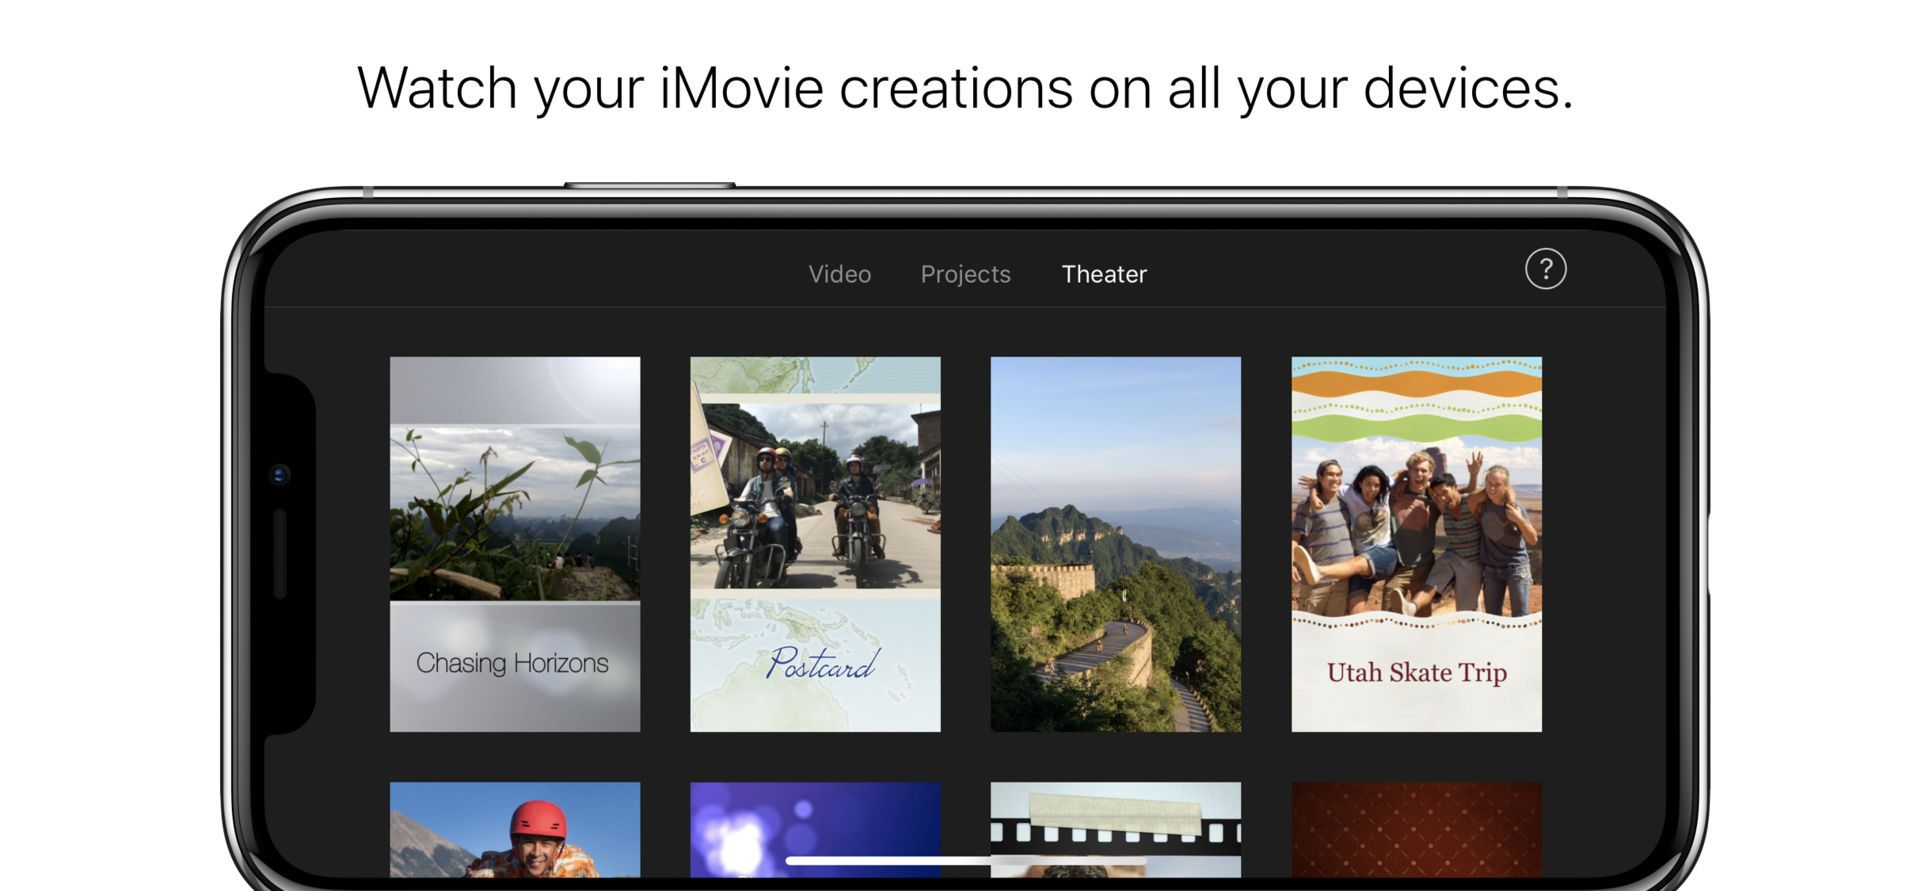 iMovie LifestyleVideoappsios Iphone, Ipod touch, Ipod